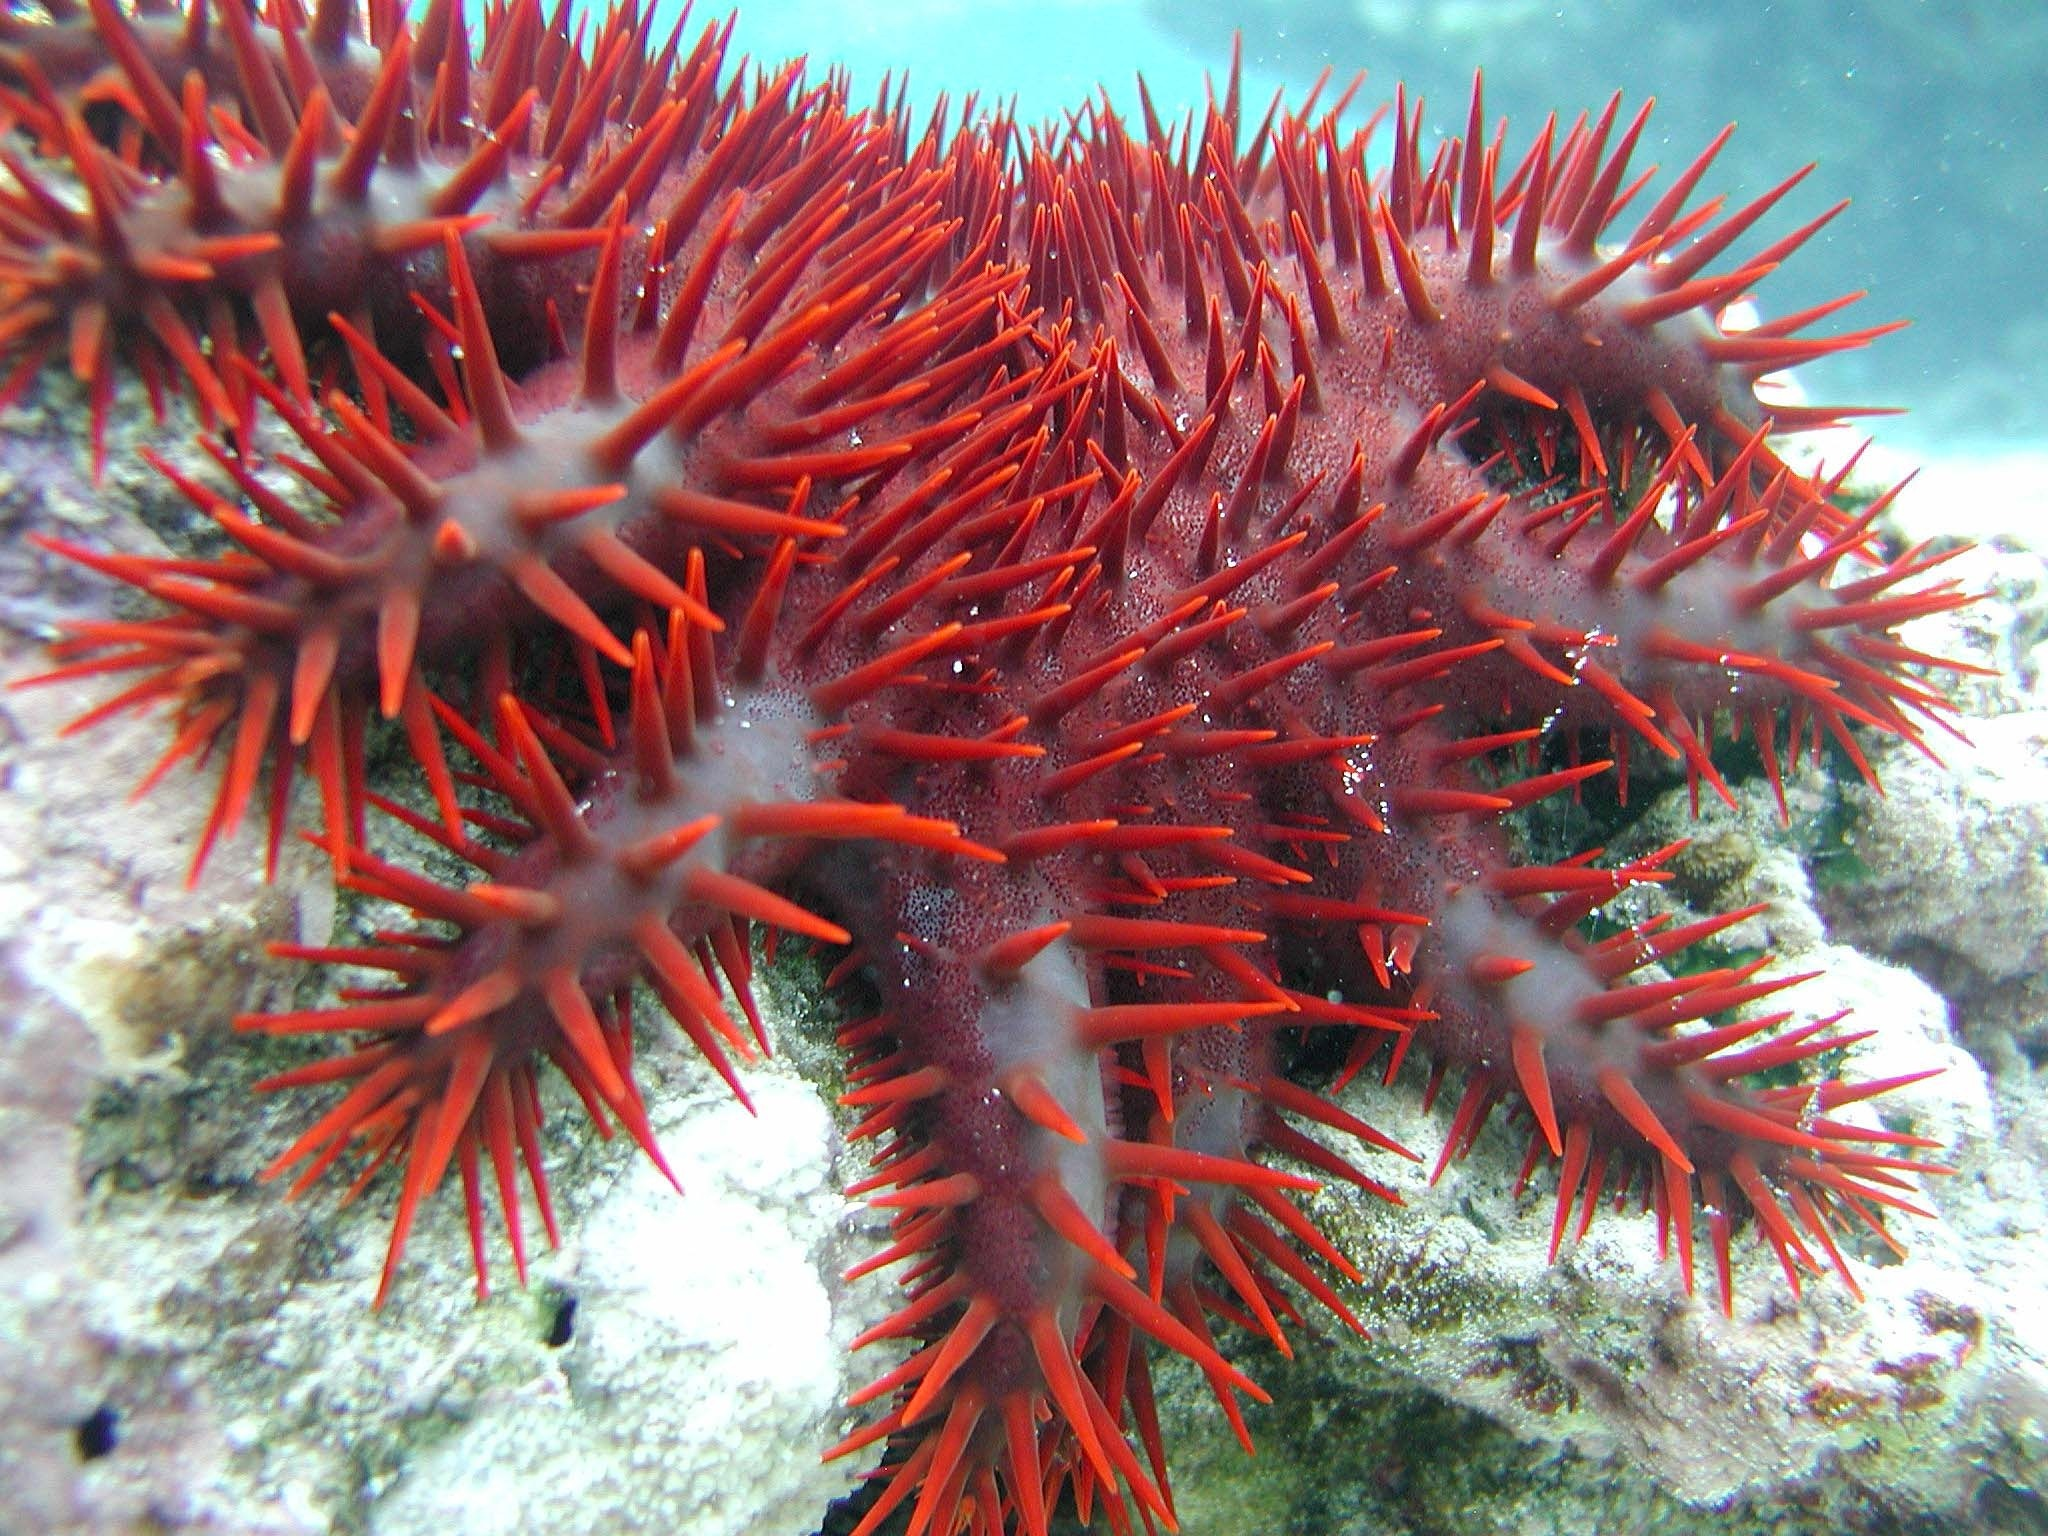 10 Of The Coolest Crown-of-thorns starfish Pictures